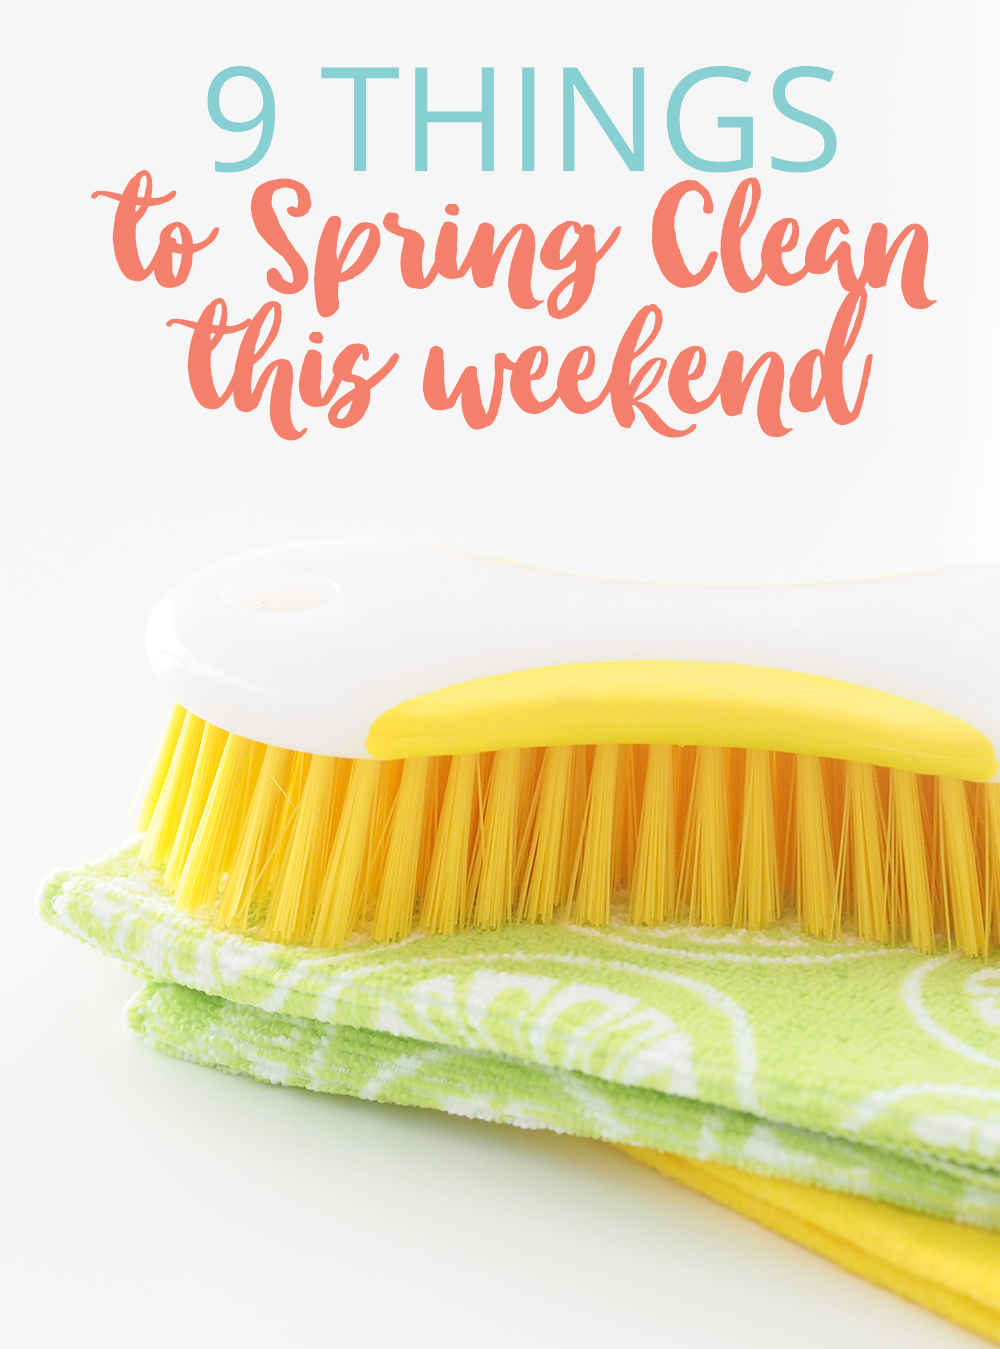 I've listed a few things to Spring Clean this weekend, jobs that aren't normally completed in a regular cleaning routine.